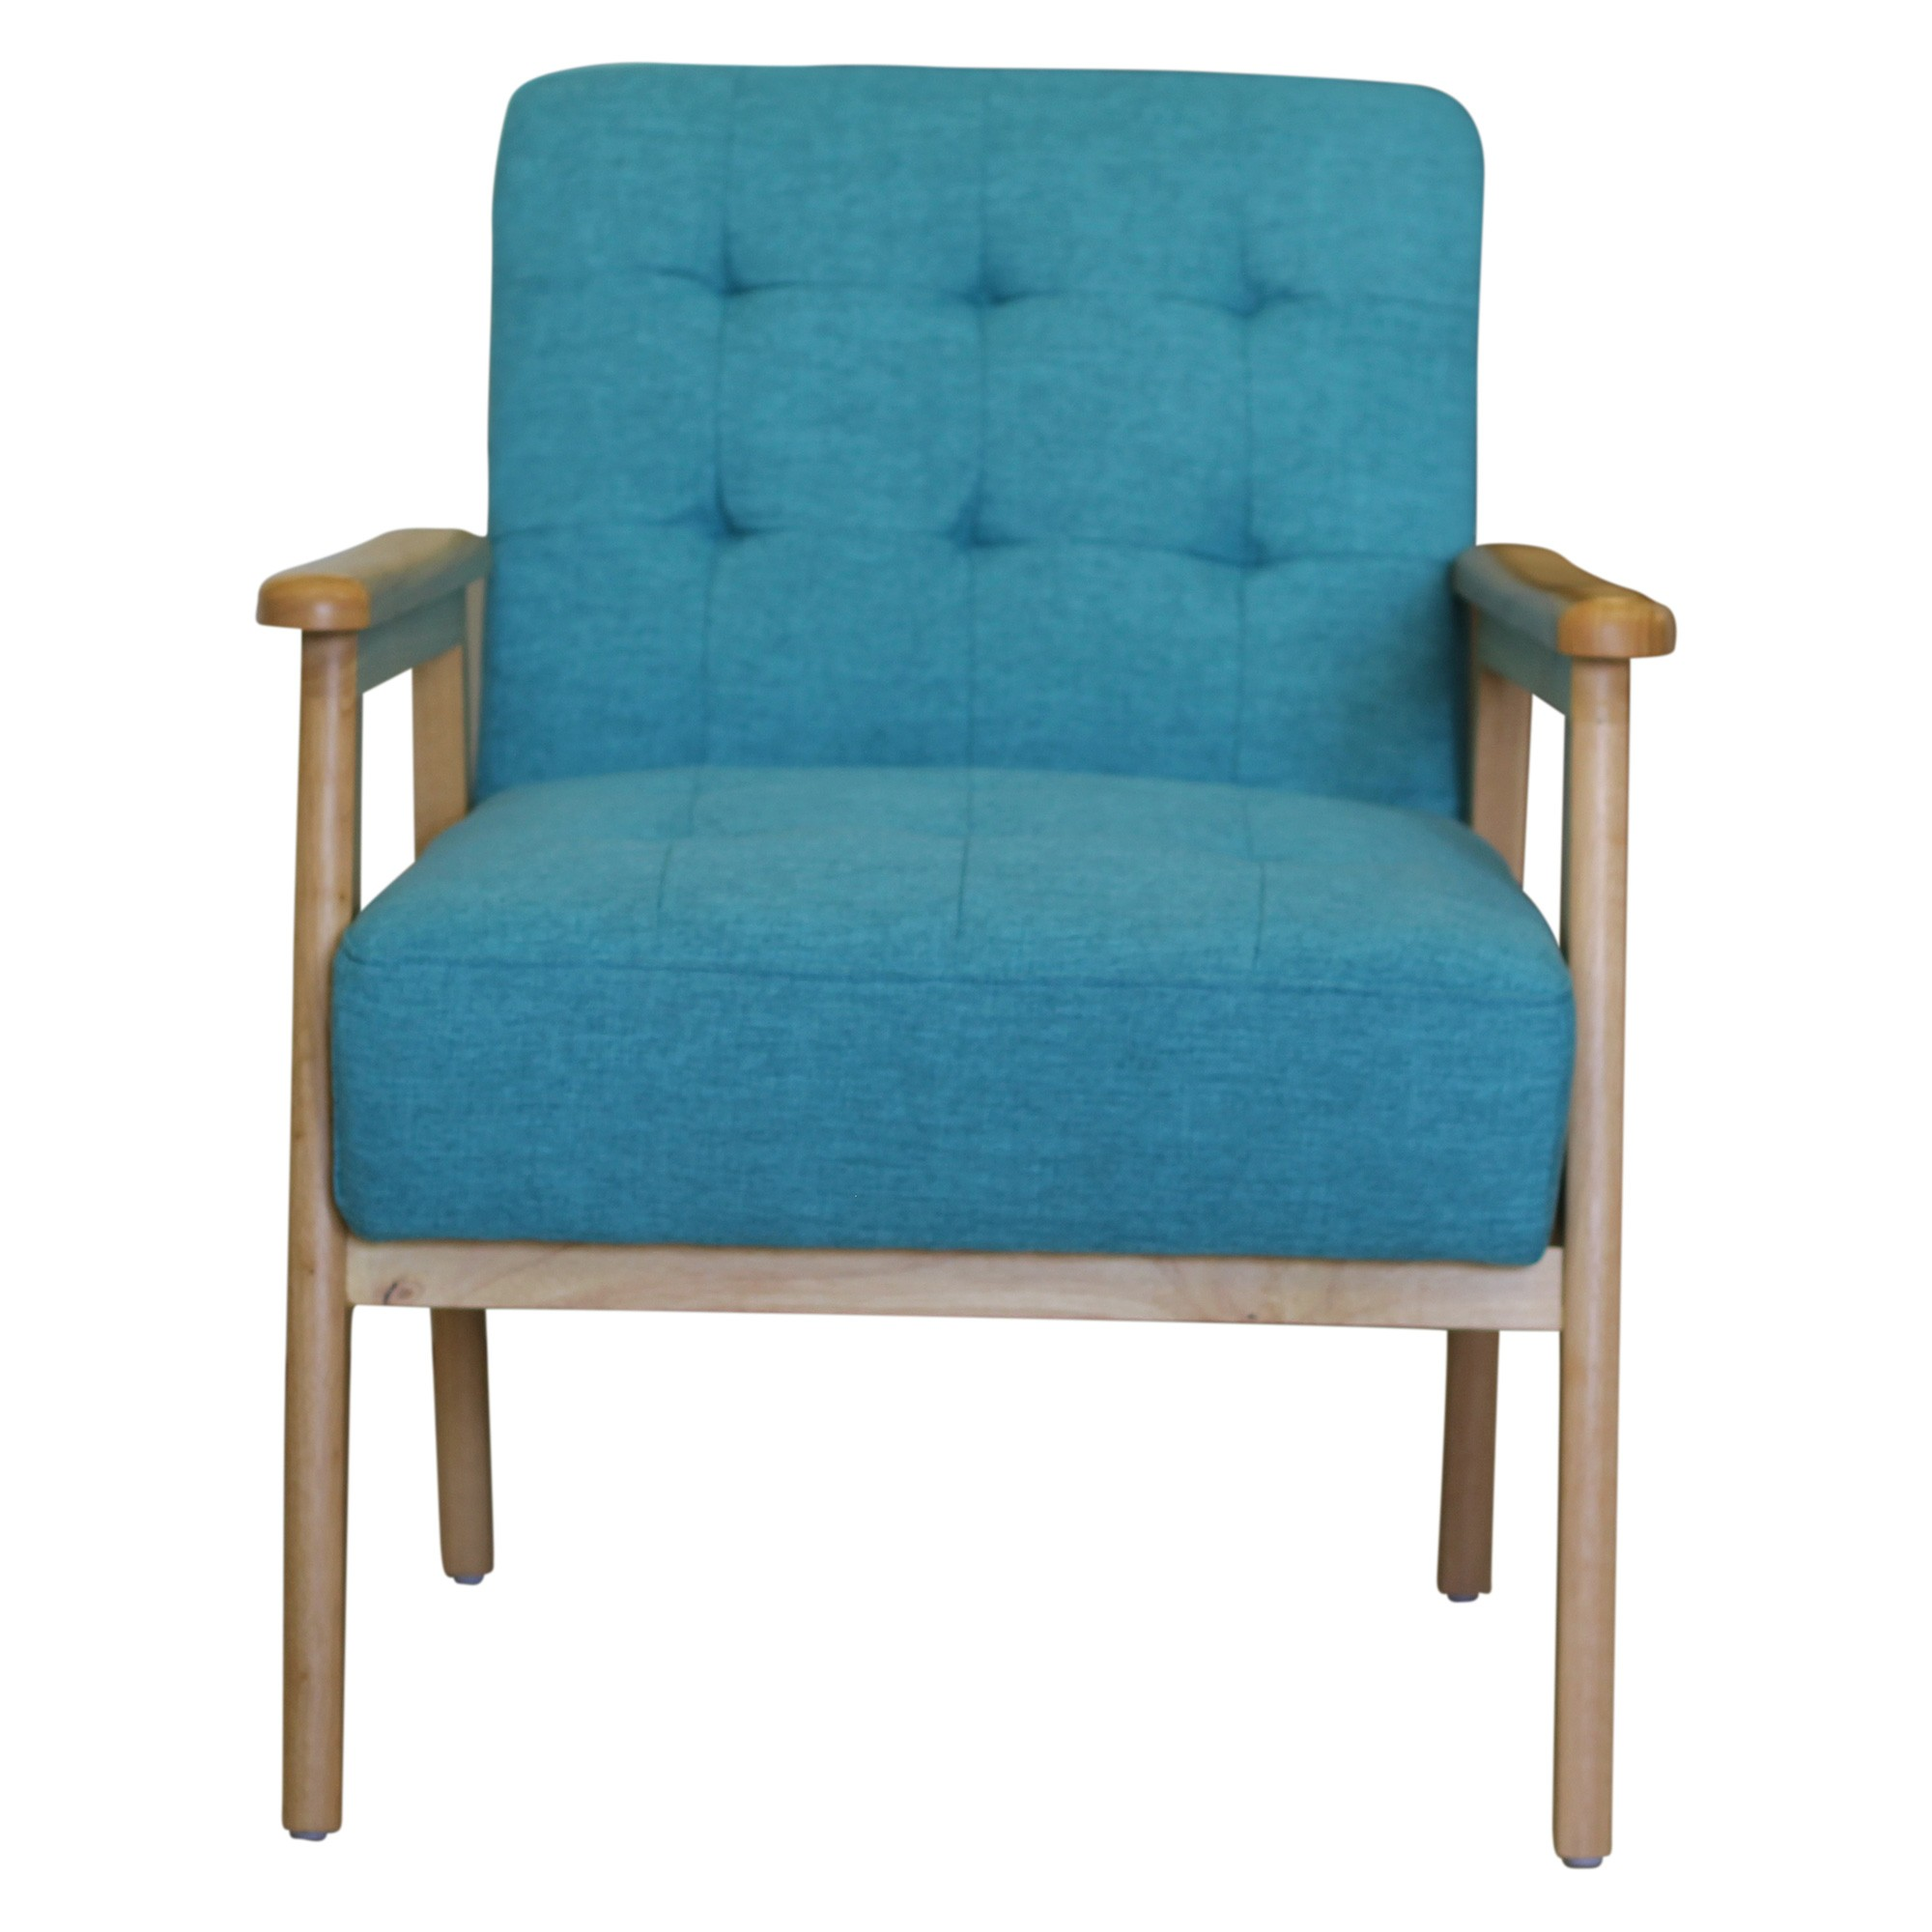 Louisville Timber & Fabric Lounge Armchair, Teal